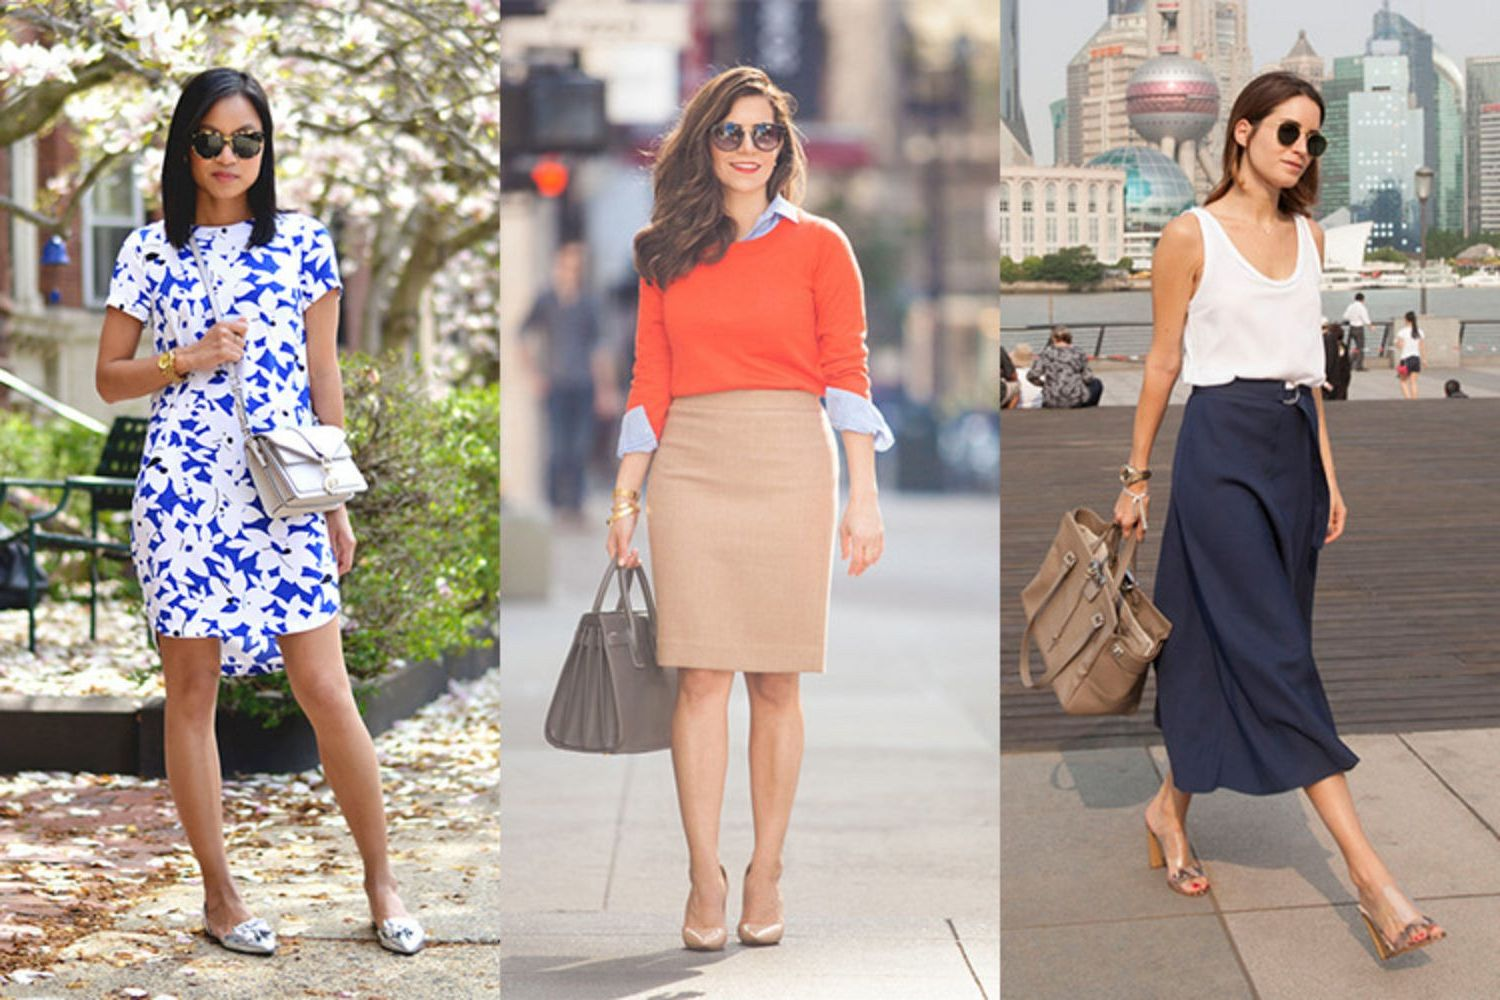 b5dc8382c54 Street Style Guide to Summer Work Attire For Women 2019 ...